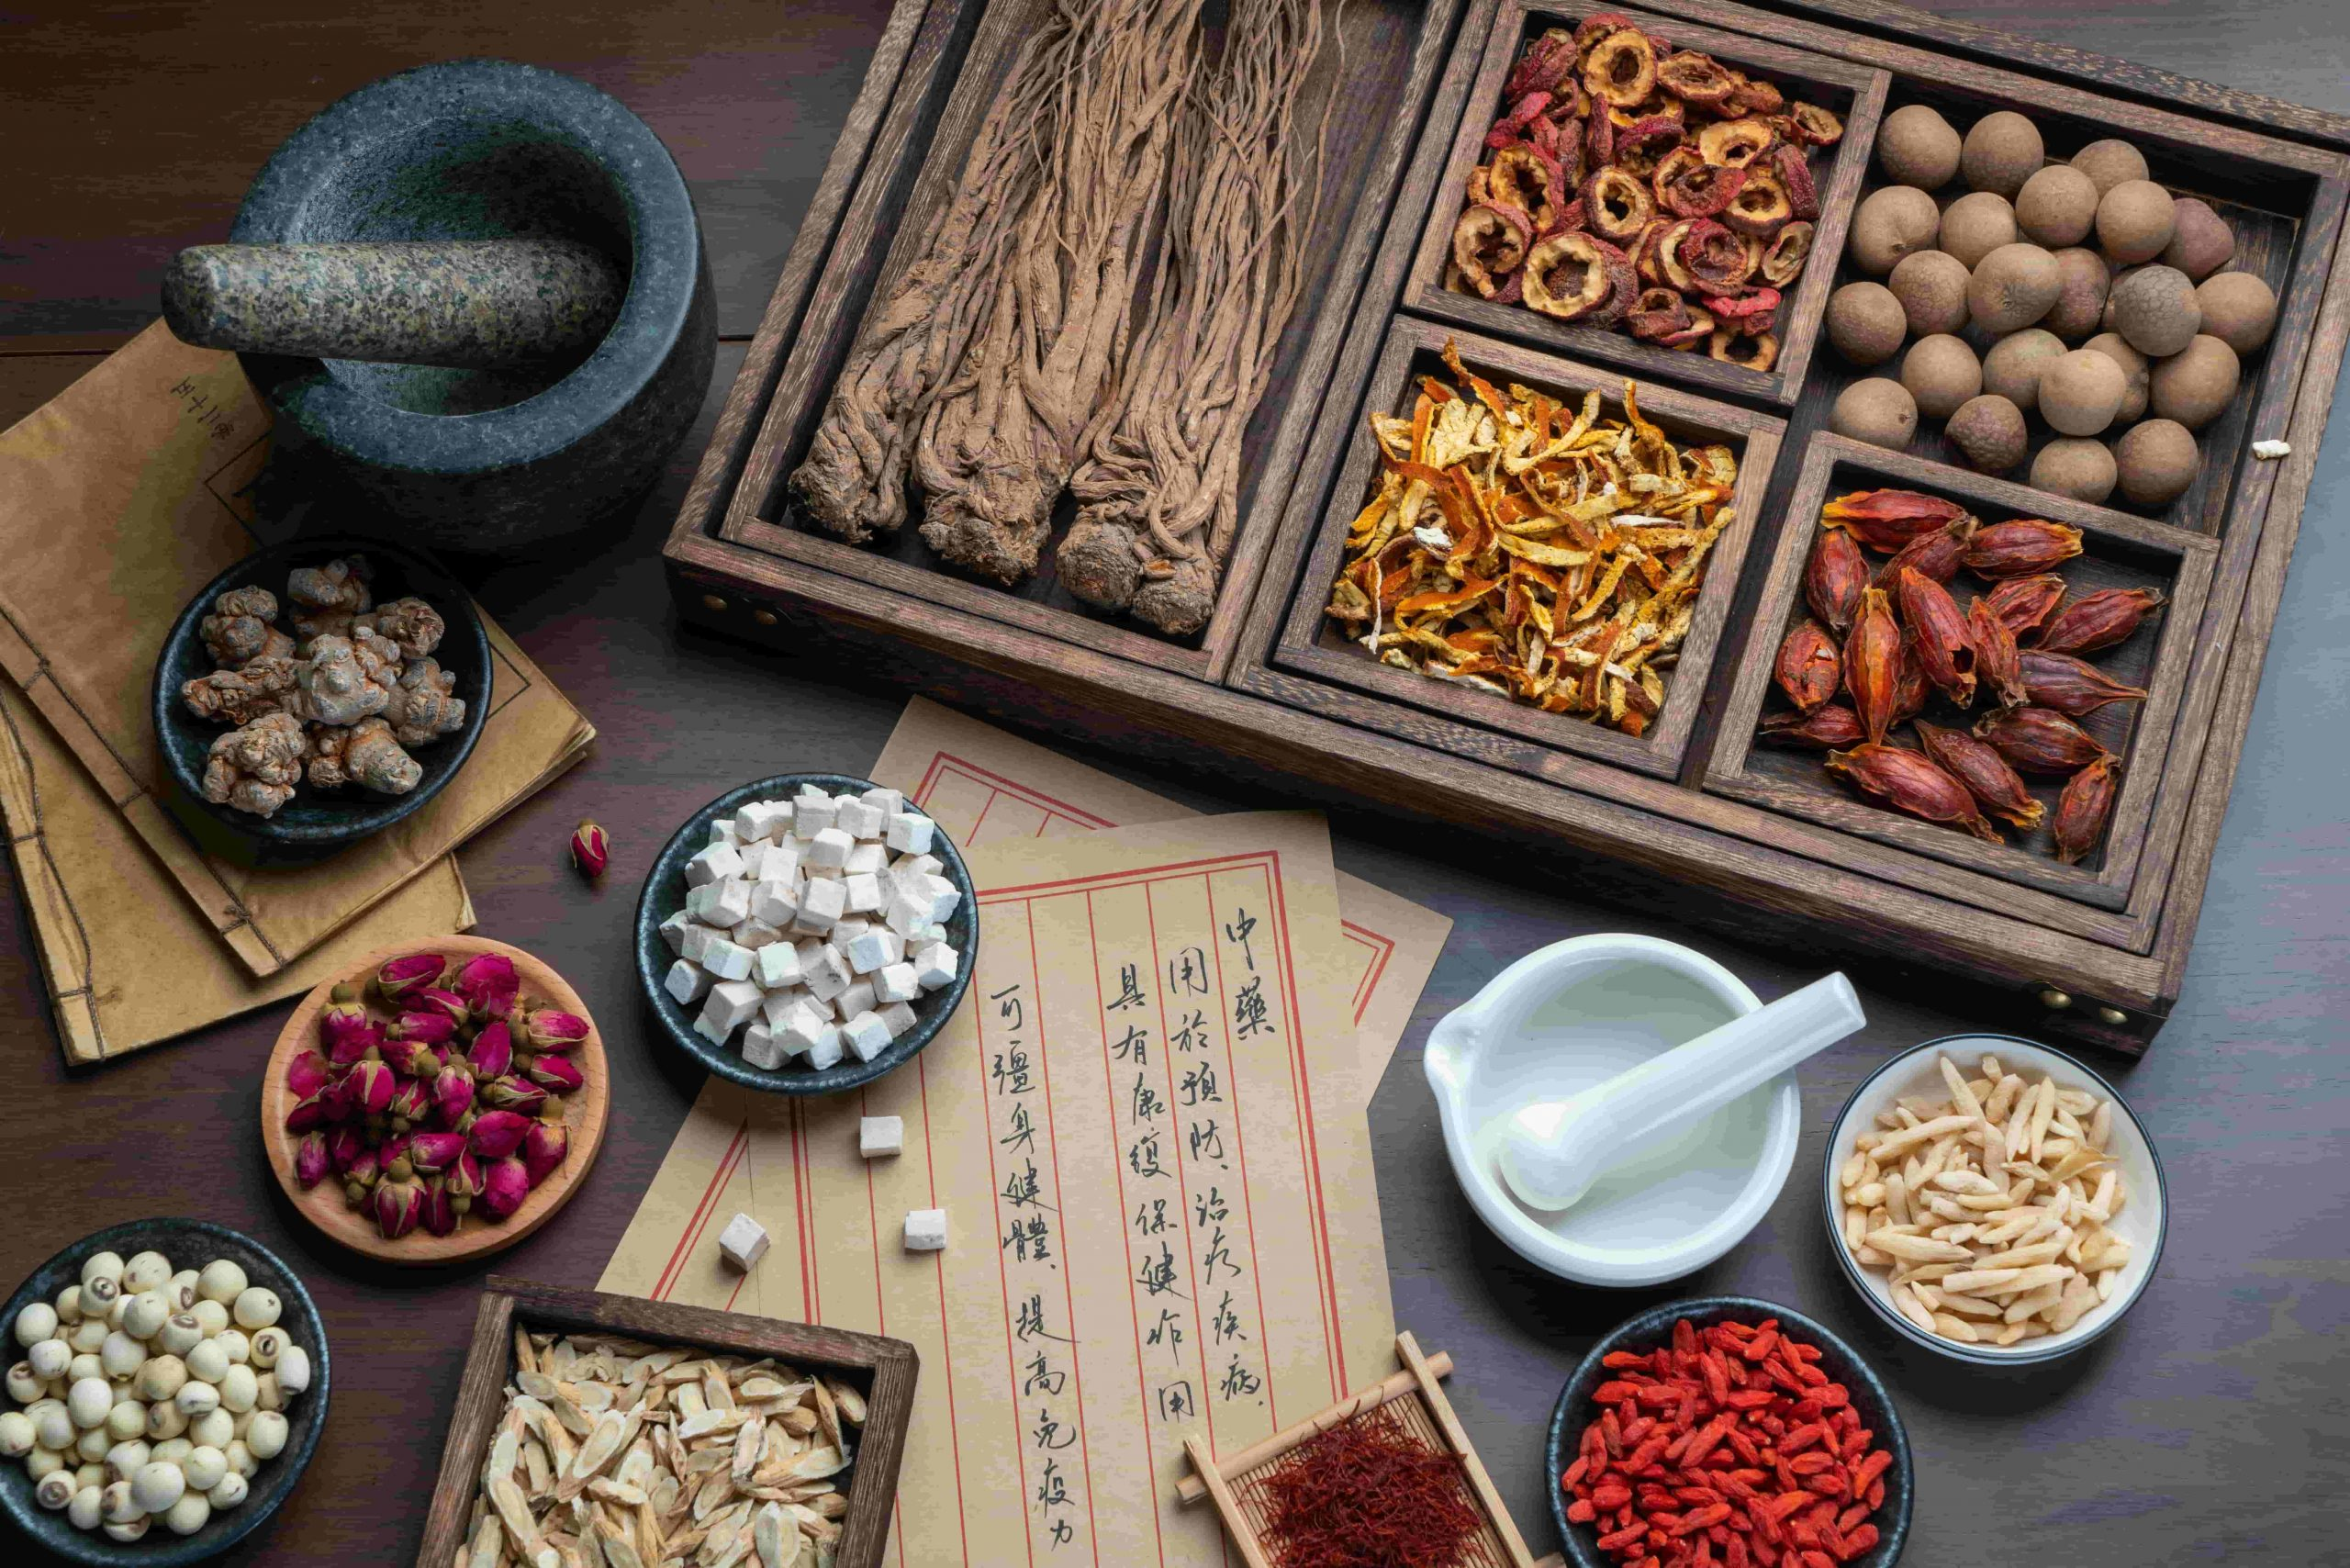 ancient-chinese-medicine-books-herbs-table-min